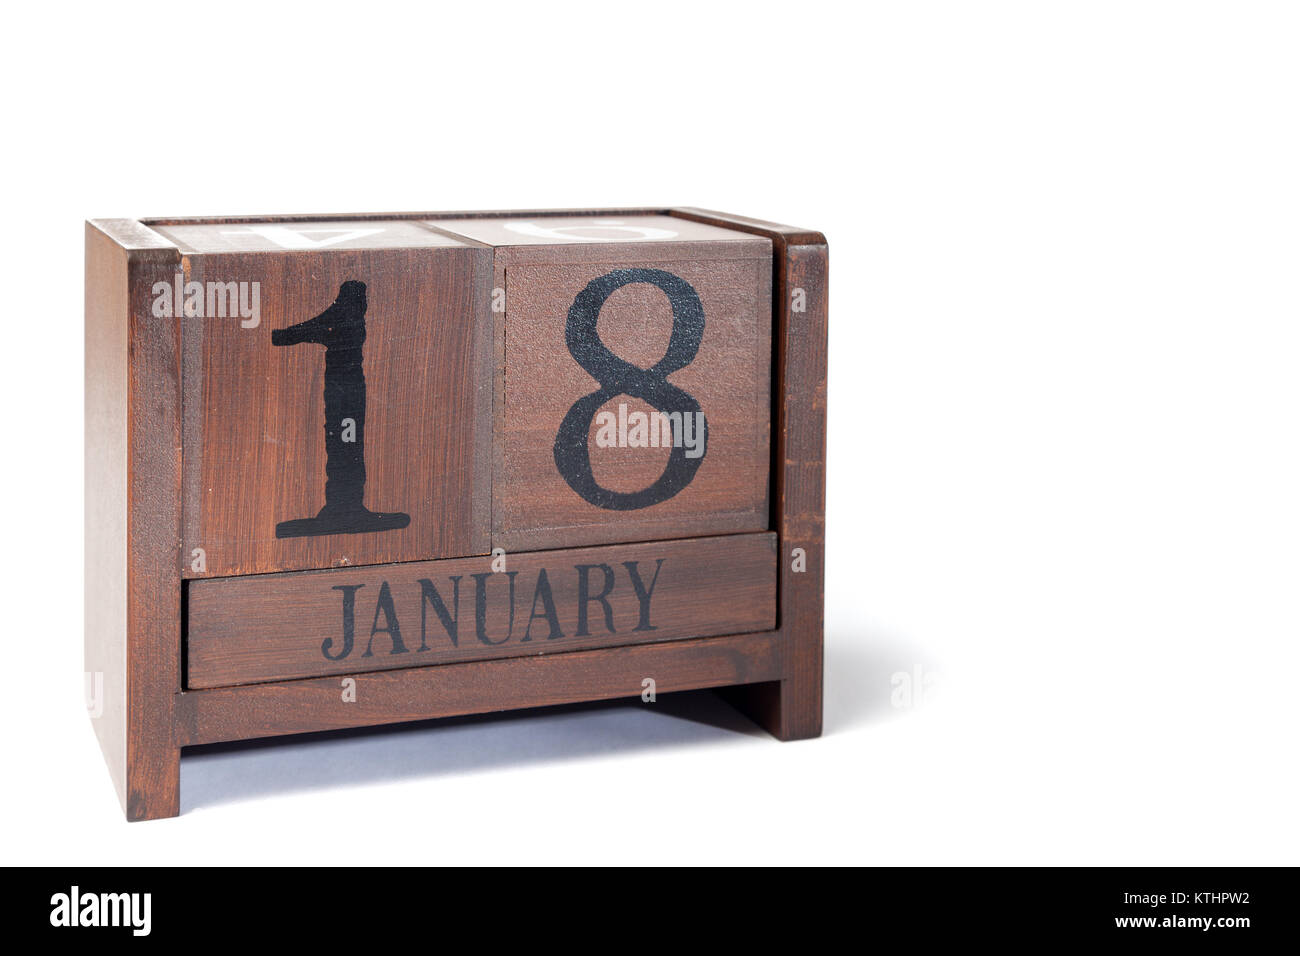 Wooden Perpetual Calendar set to January 18th - Stock Image